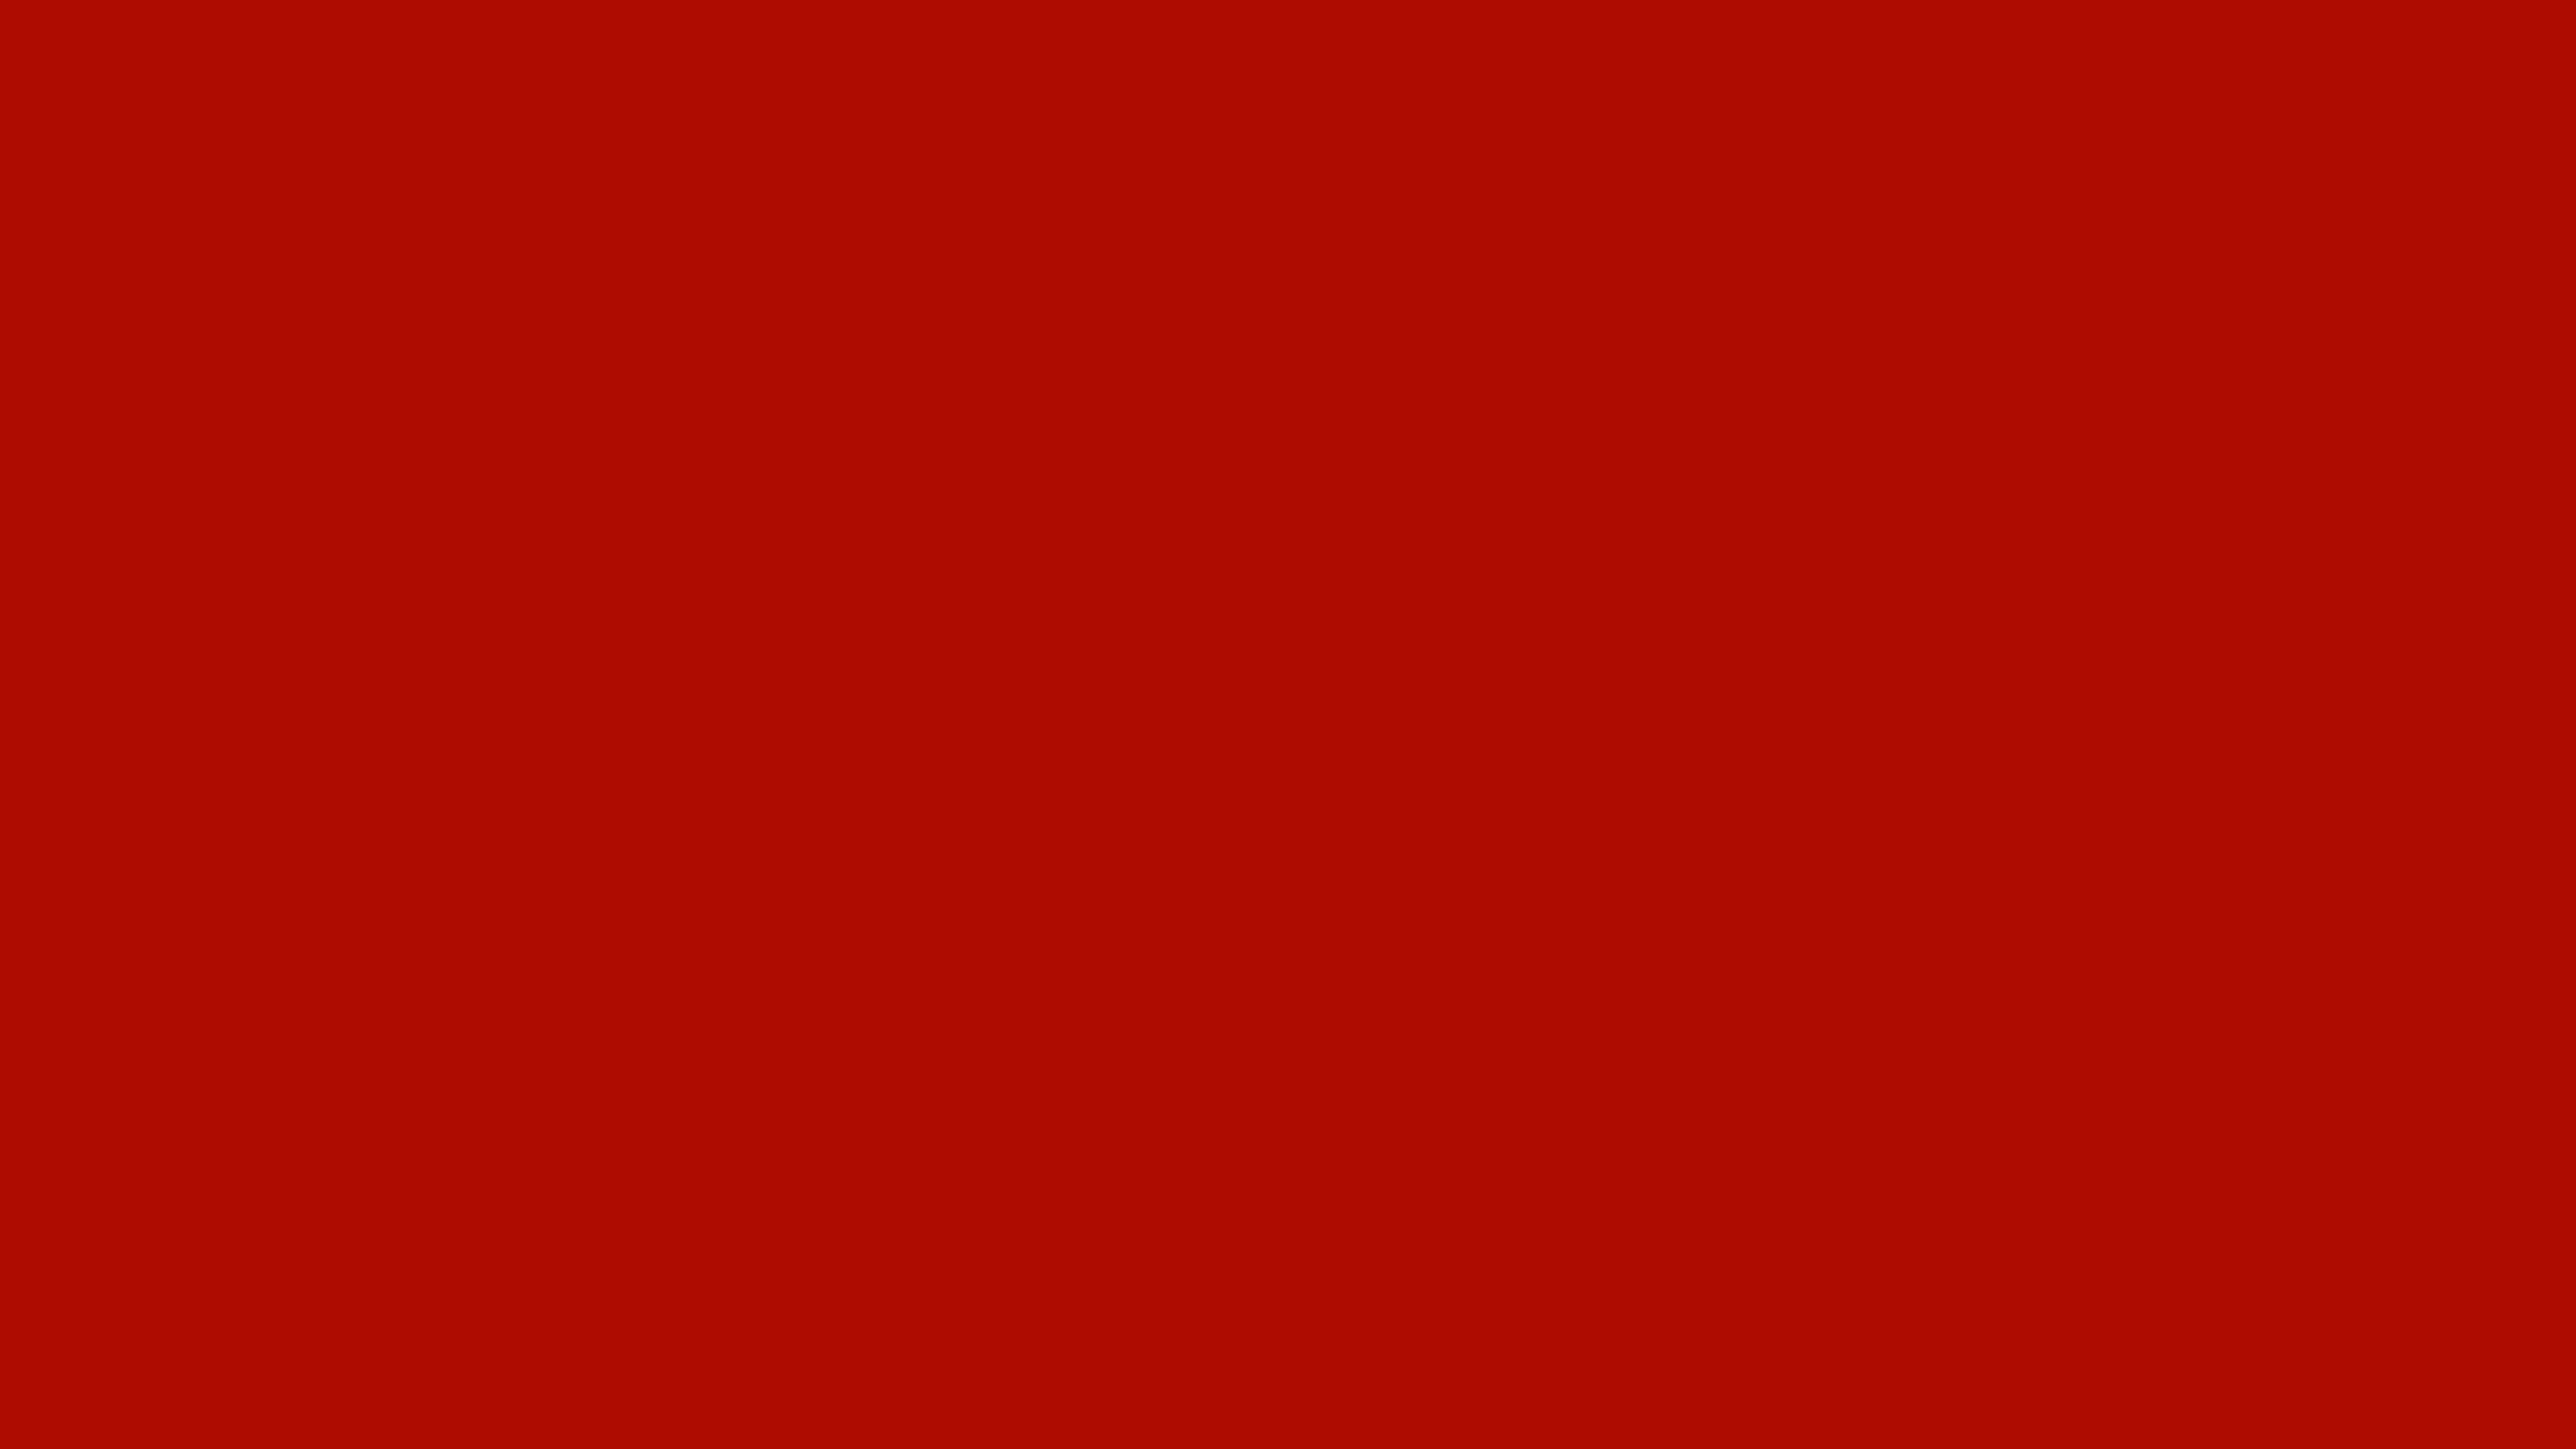 3840x2160 Mordant Red 19 Solid Color Background